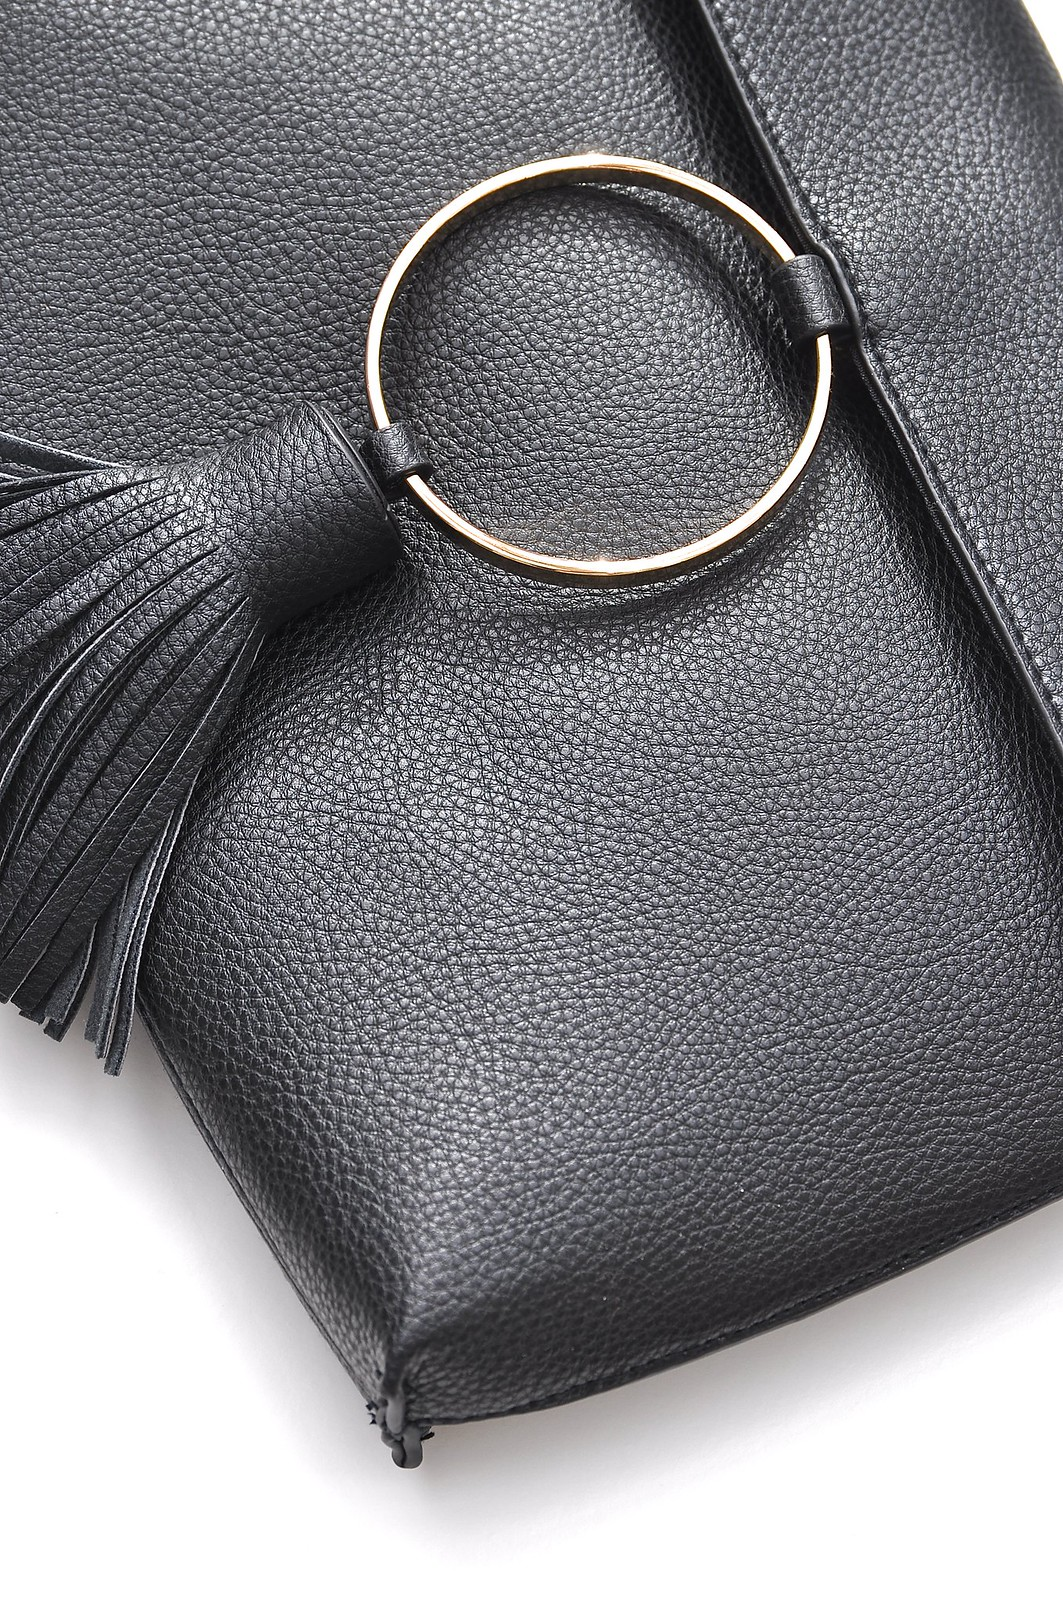 Asos Black circle clutch bag 2